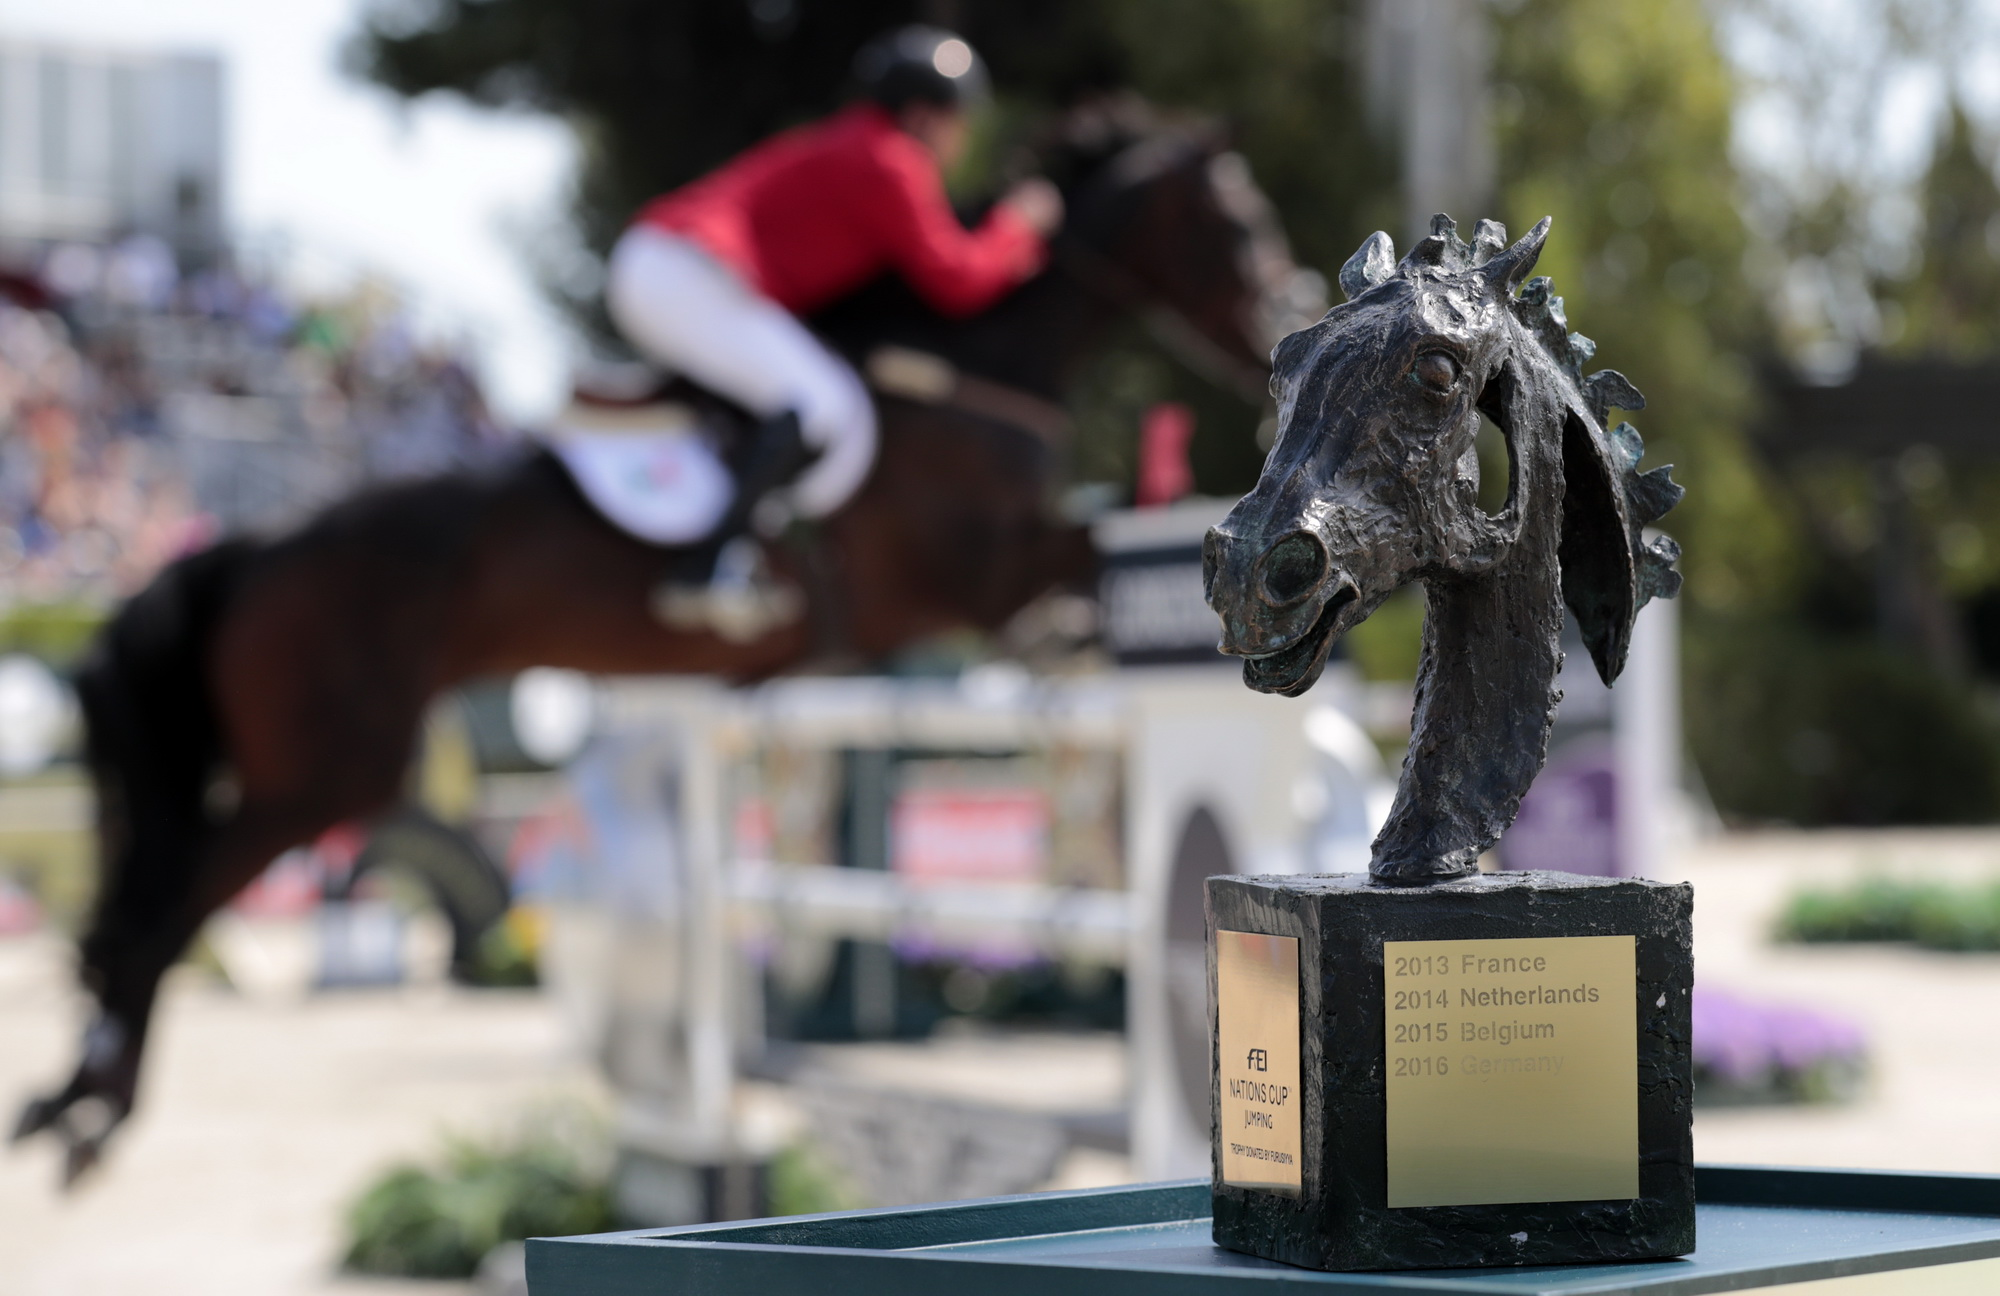 Mexico's Federico Fernandez riding Guru competes behind the FEI Nations Cup trophy